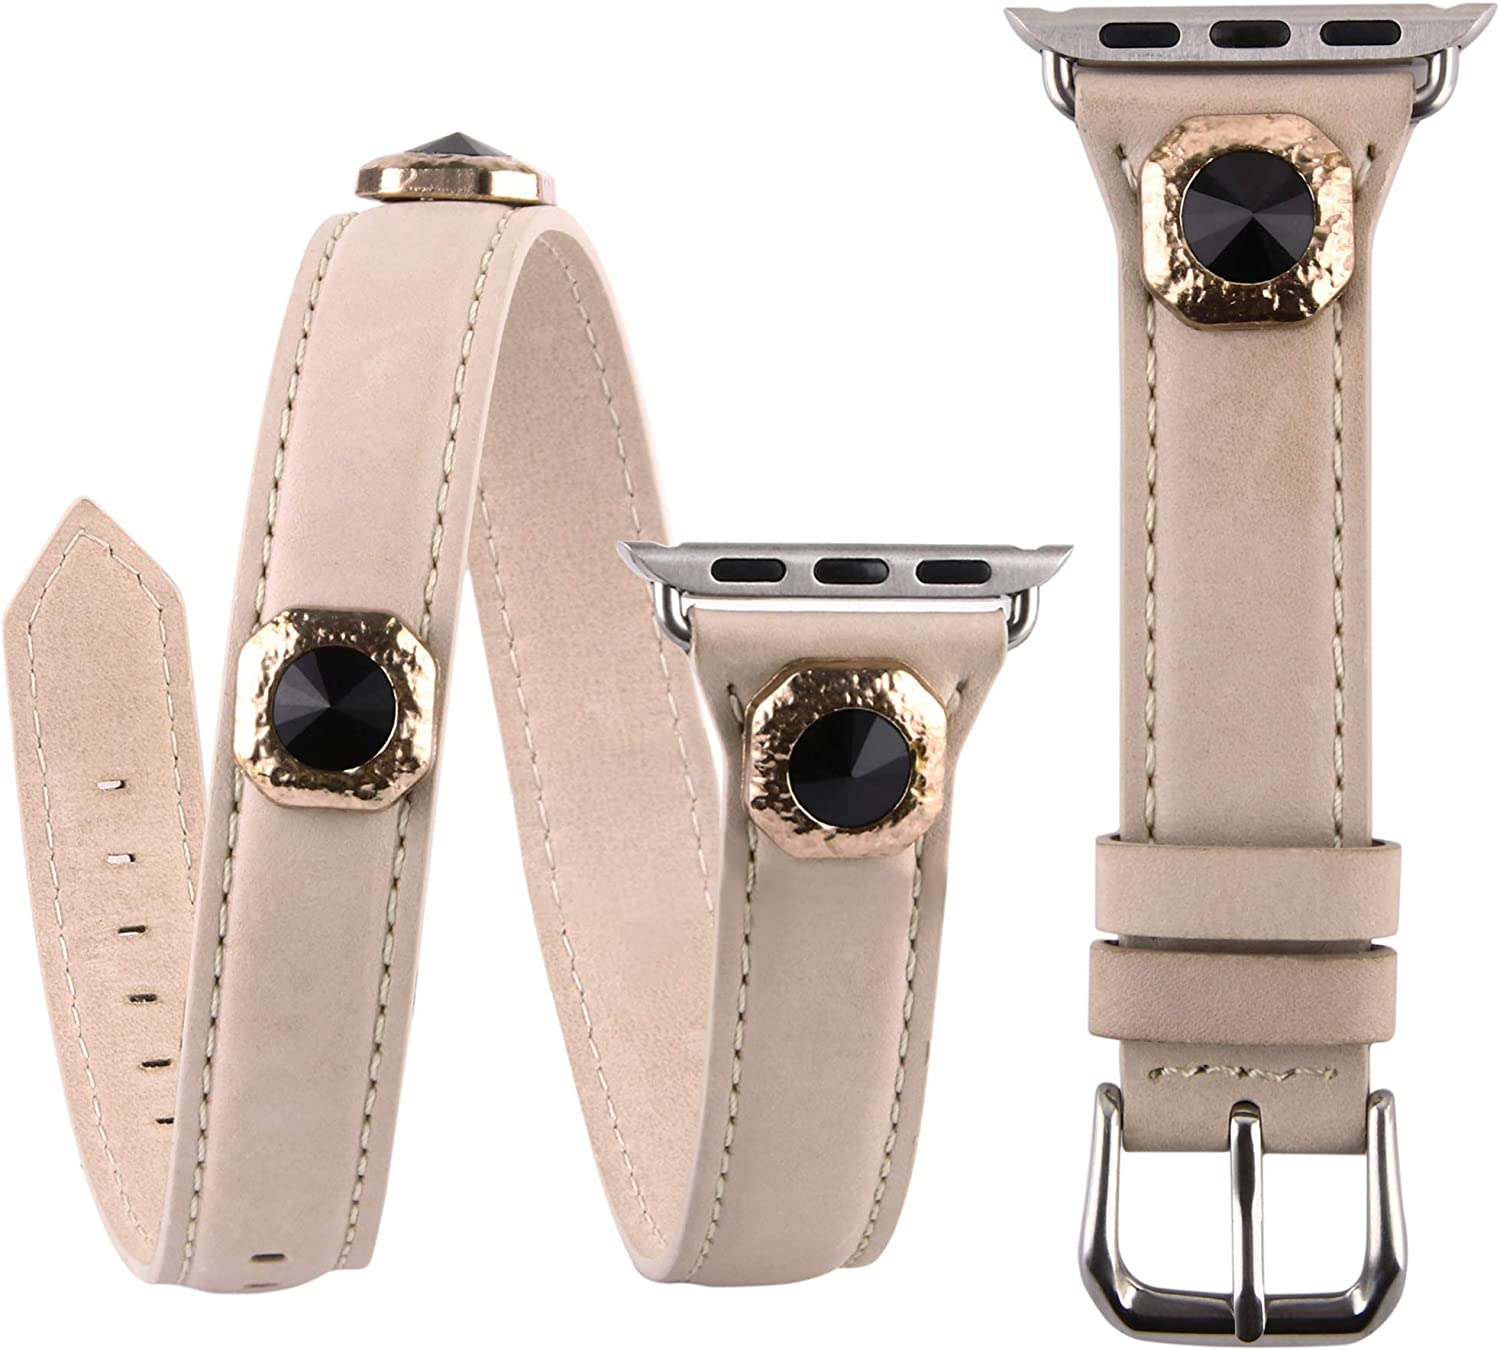 VIQIV Multi Wrap Leather Bracelets Compatible with Apple Watch 38mm 40mm 42mm 44mm iwatch SE Series 6 5 4 3 2 1 for Women Girls, Bling Studs Cuff Jewelry Fancy Smartwatch Wristband Strap Accessories